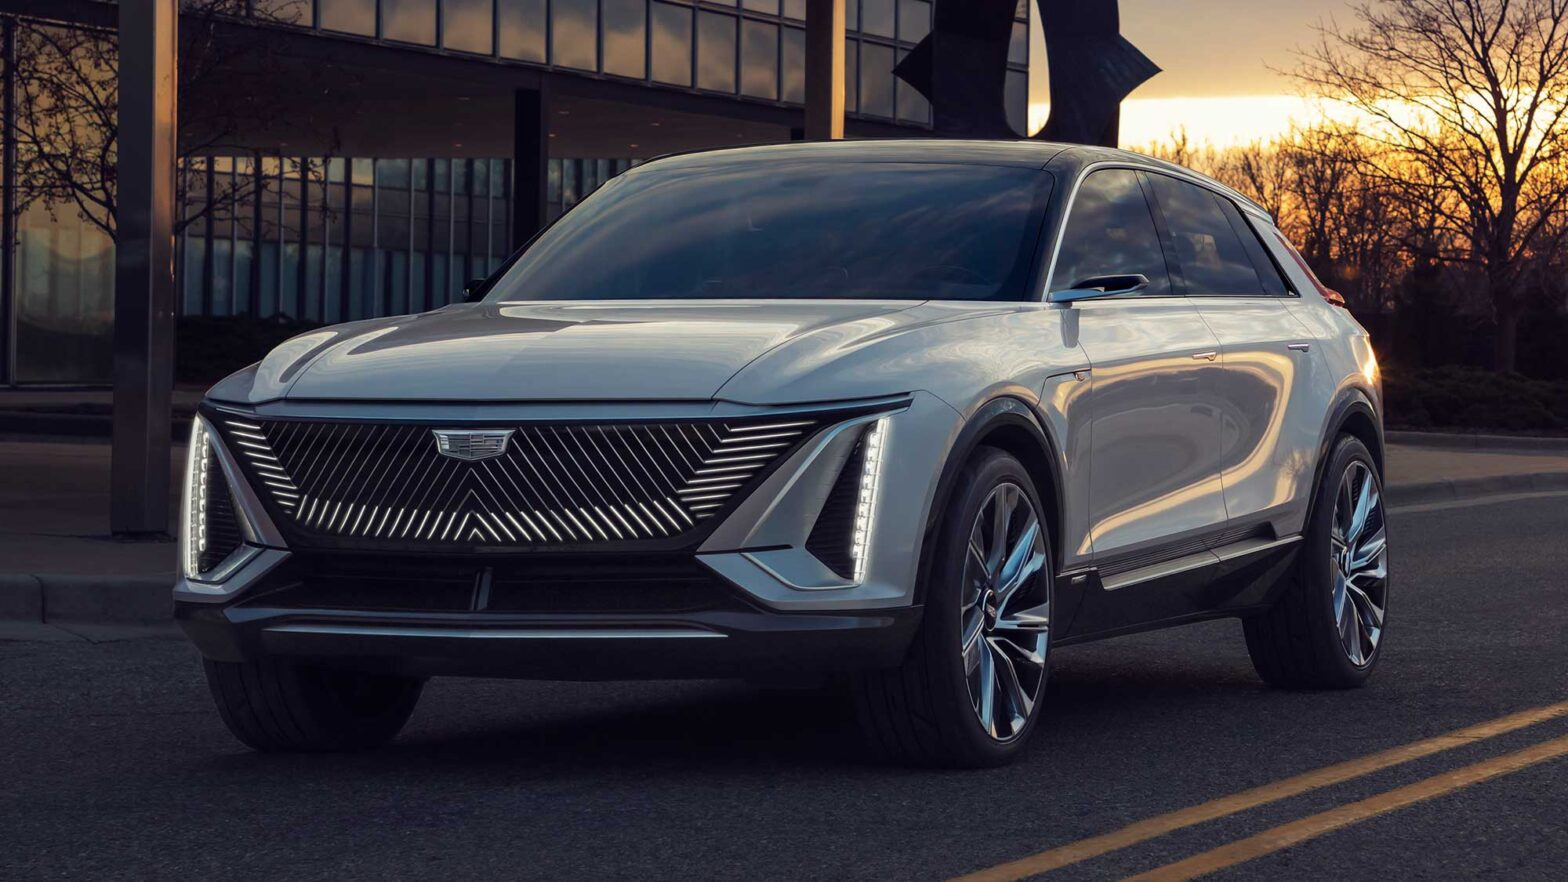 Cadillac LYRIQ Concept Electric Vehicle